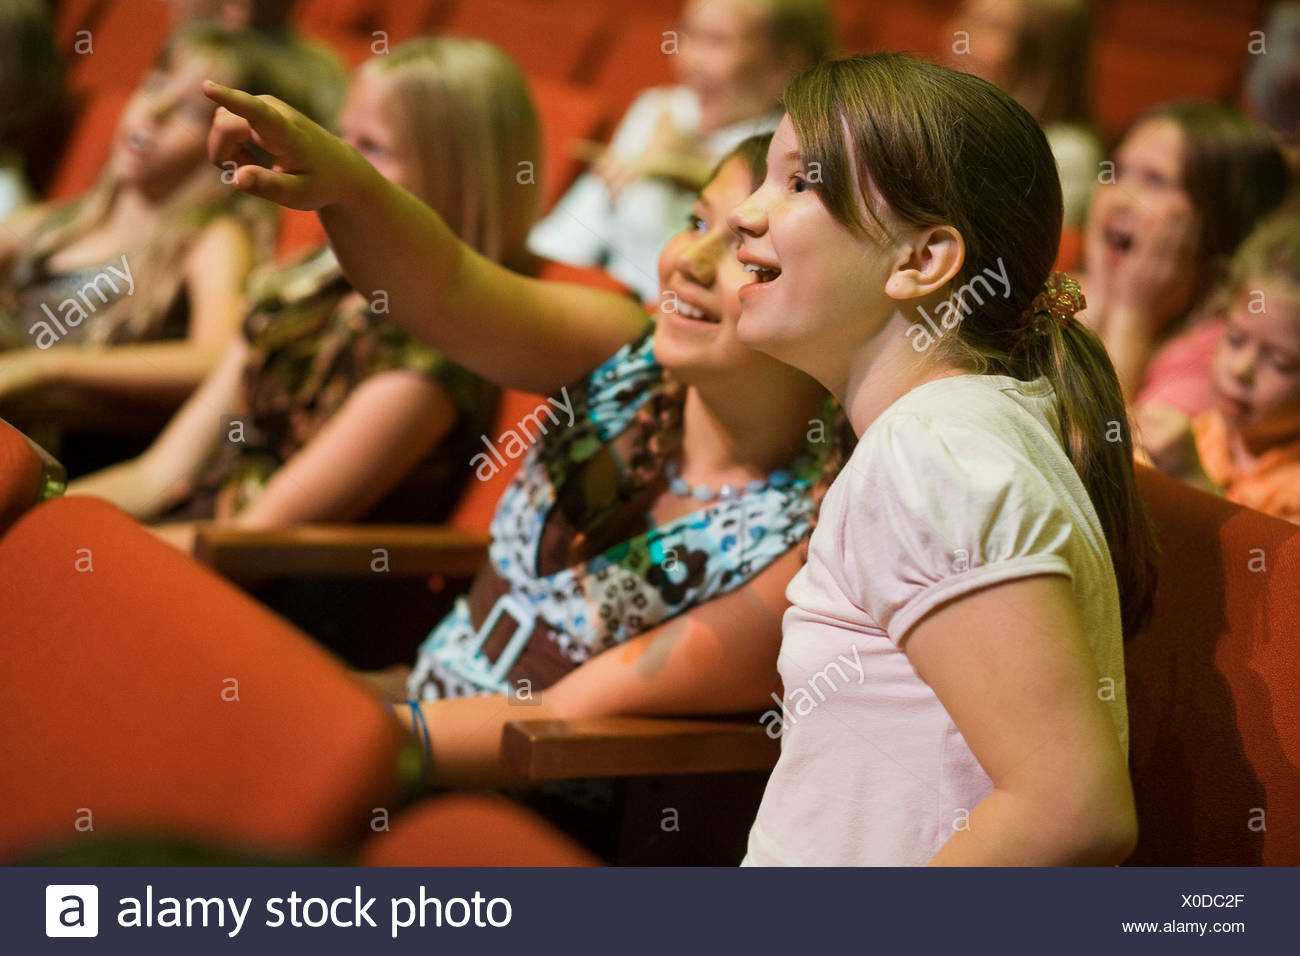 Girls pointing in theatre seats - Stock Image